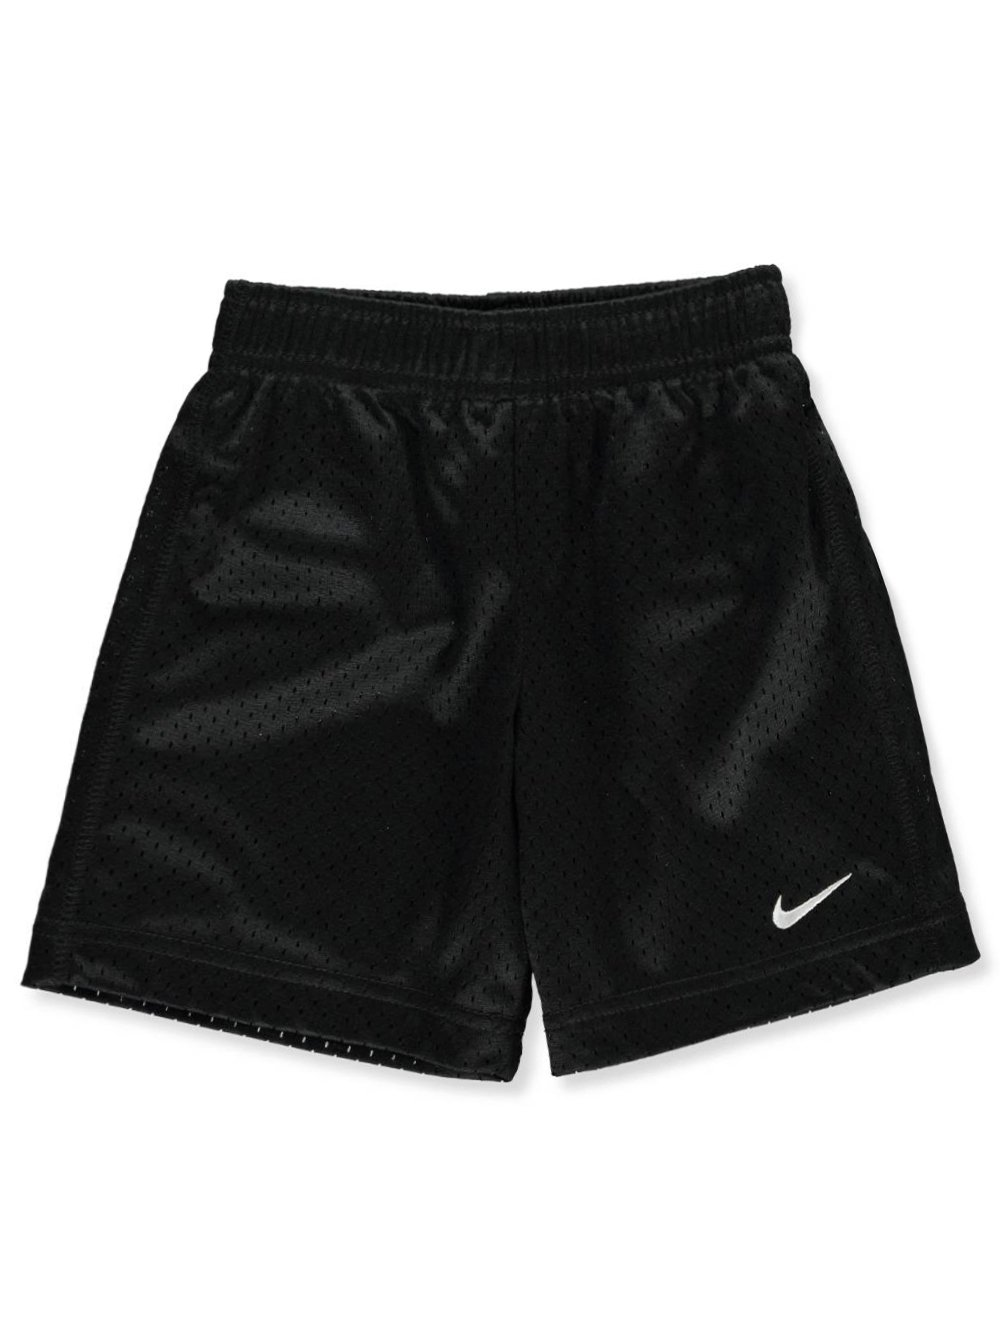 Nike Little Boys Solid Mesh Shorts (3T, Black)